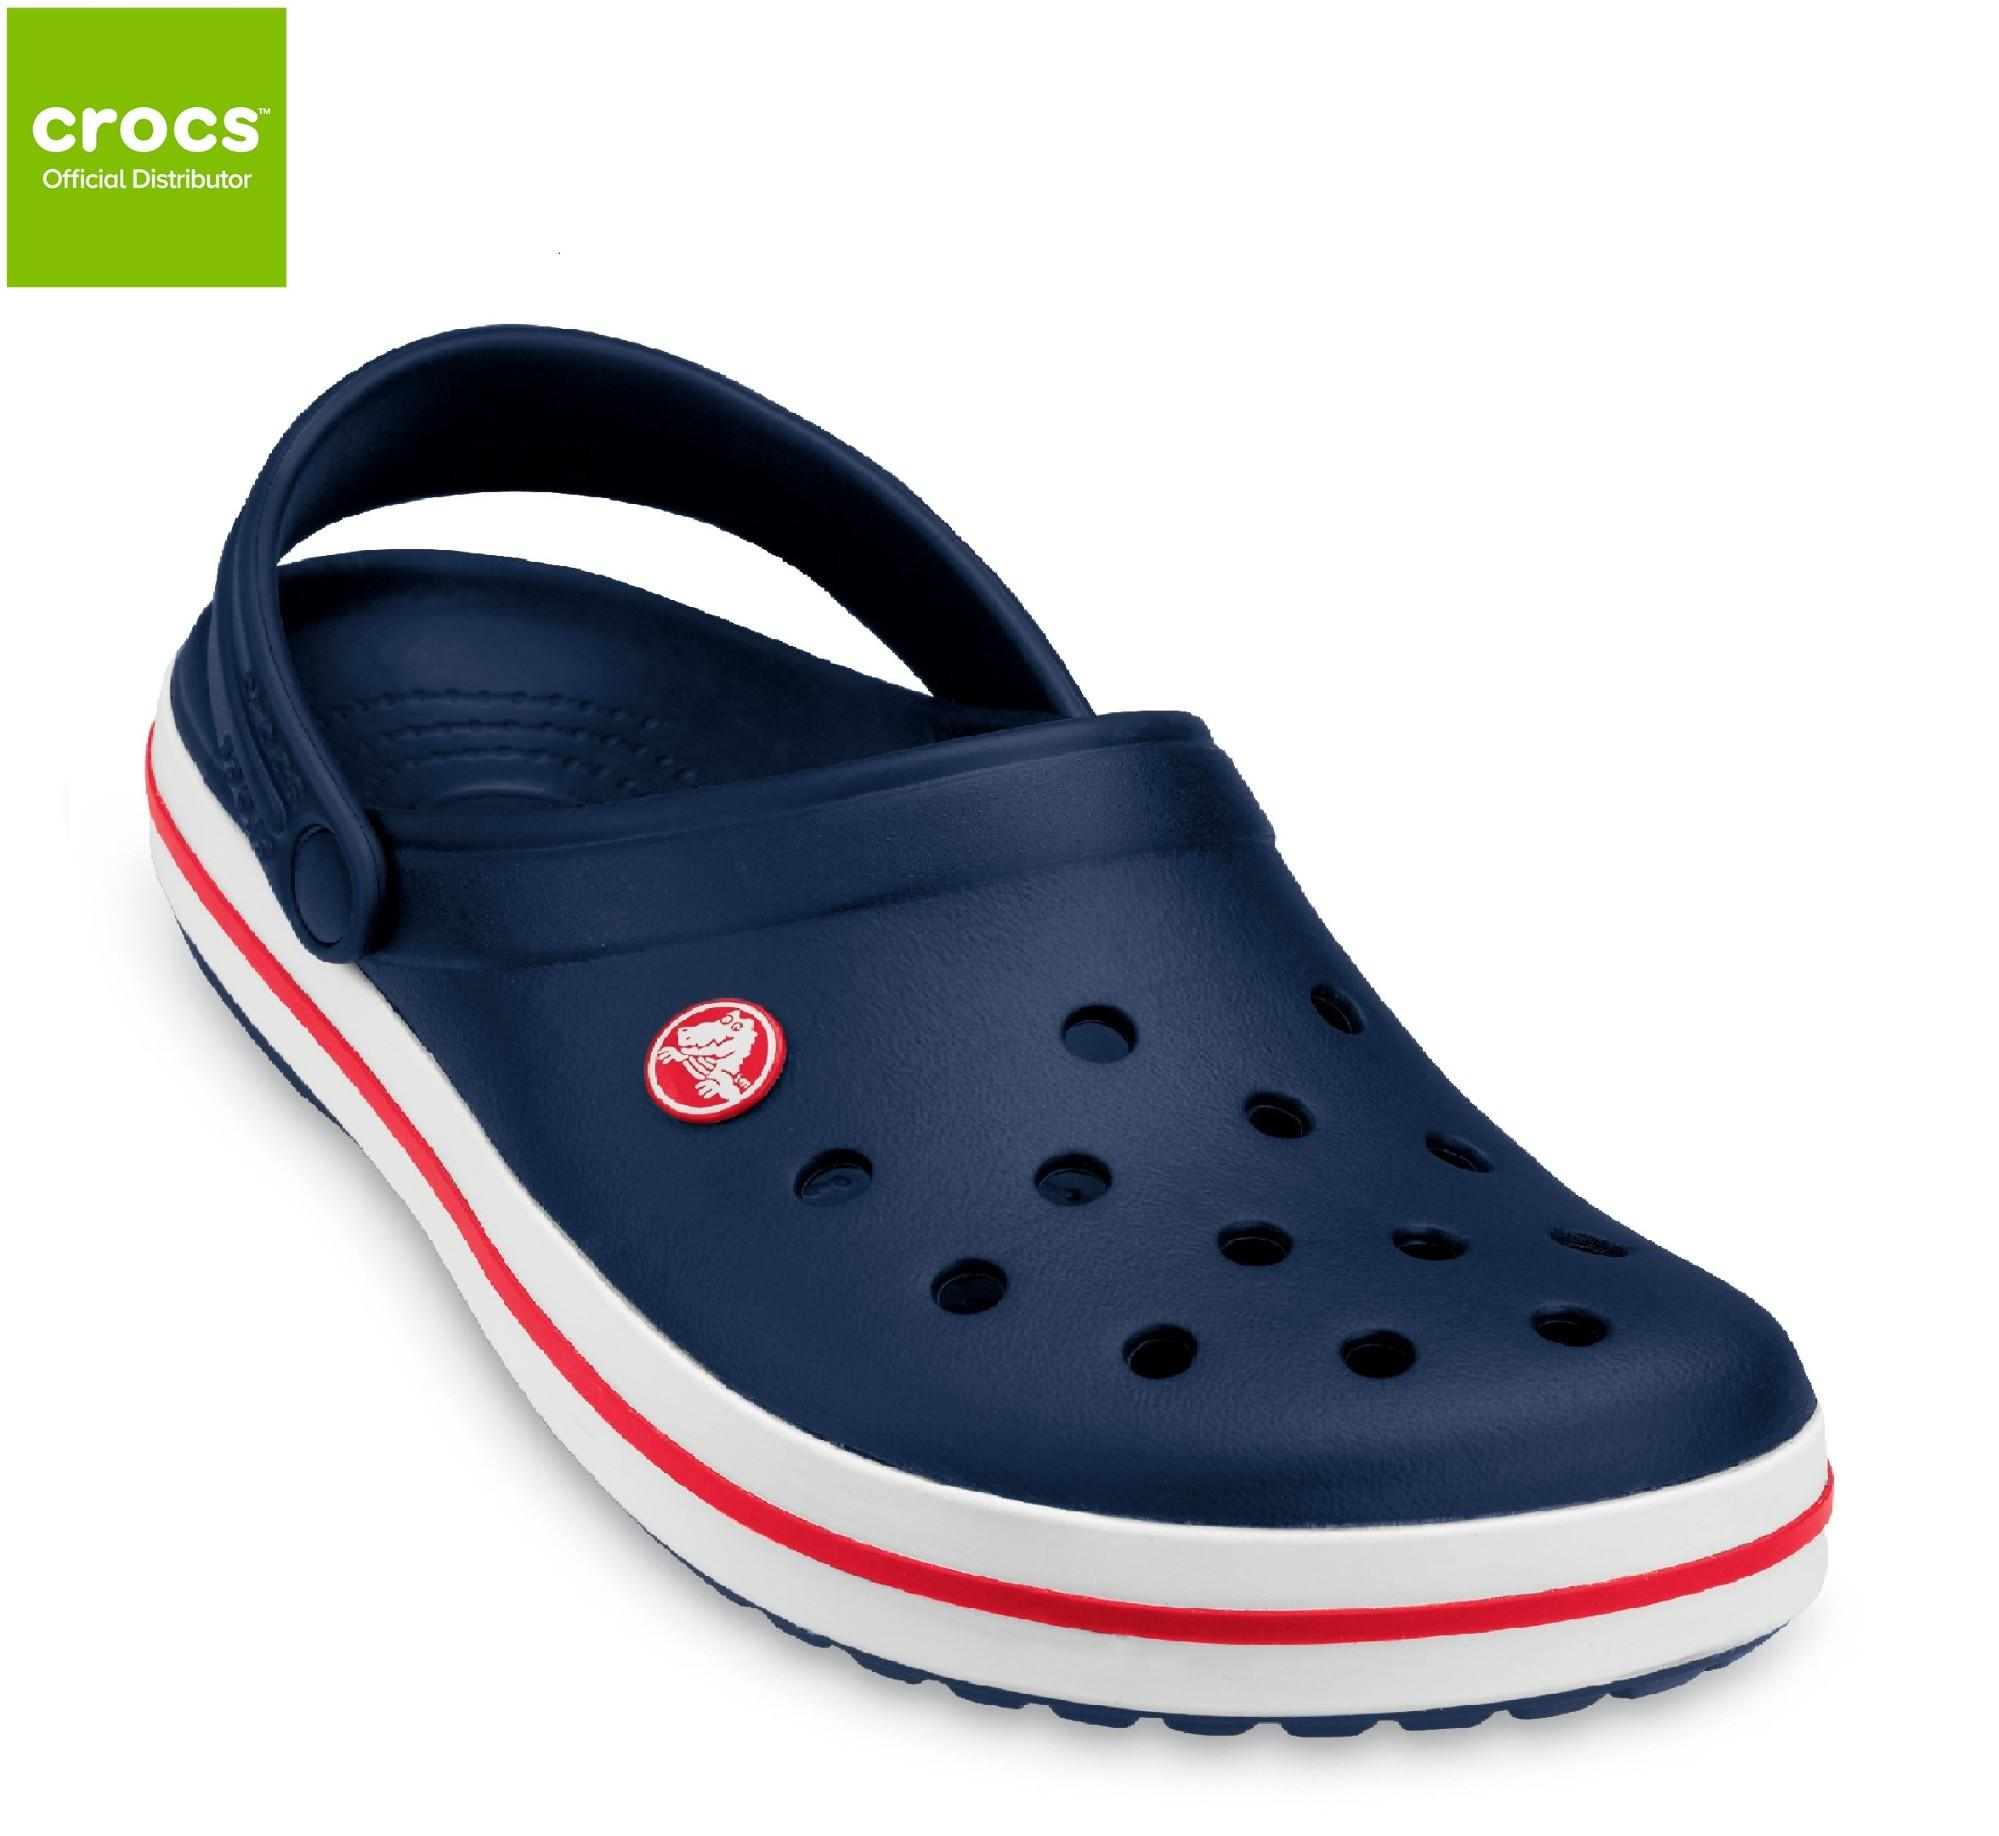 6fd6fd84a48356 Crocs Philippines  Crocs price list - Crocs Flats